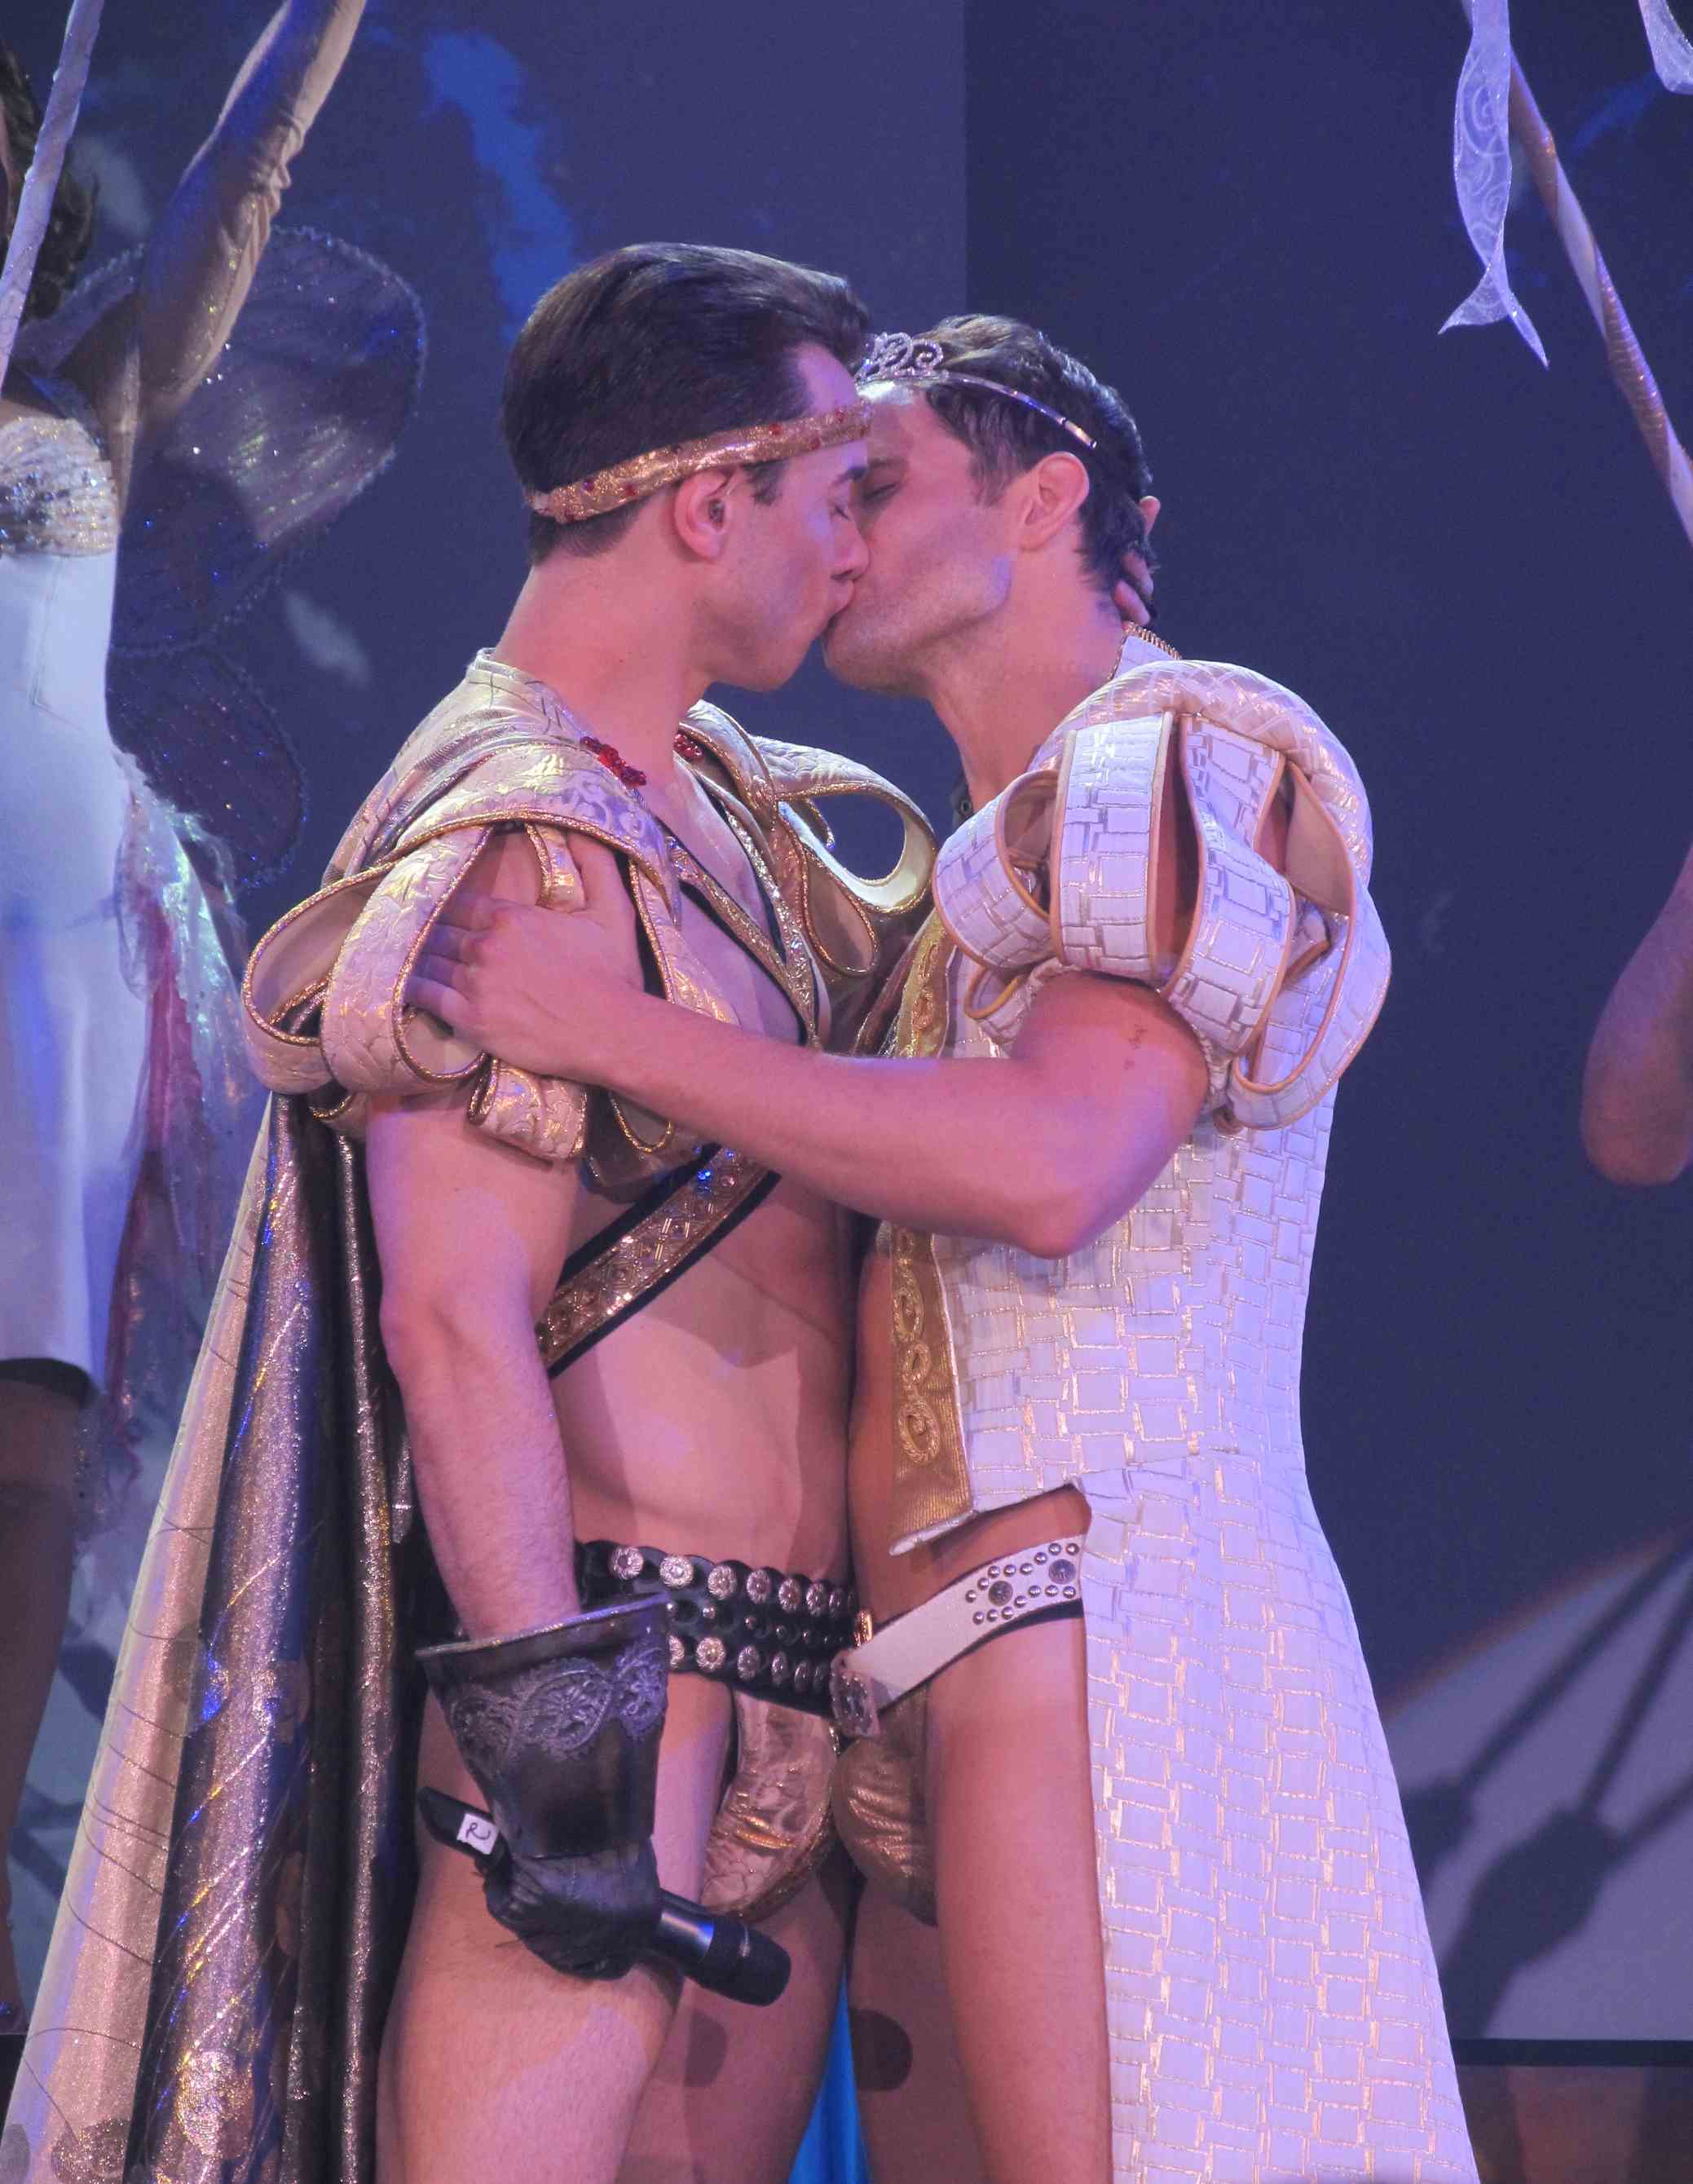 broadwaybares-22.jpg